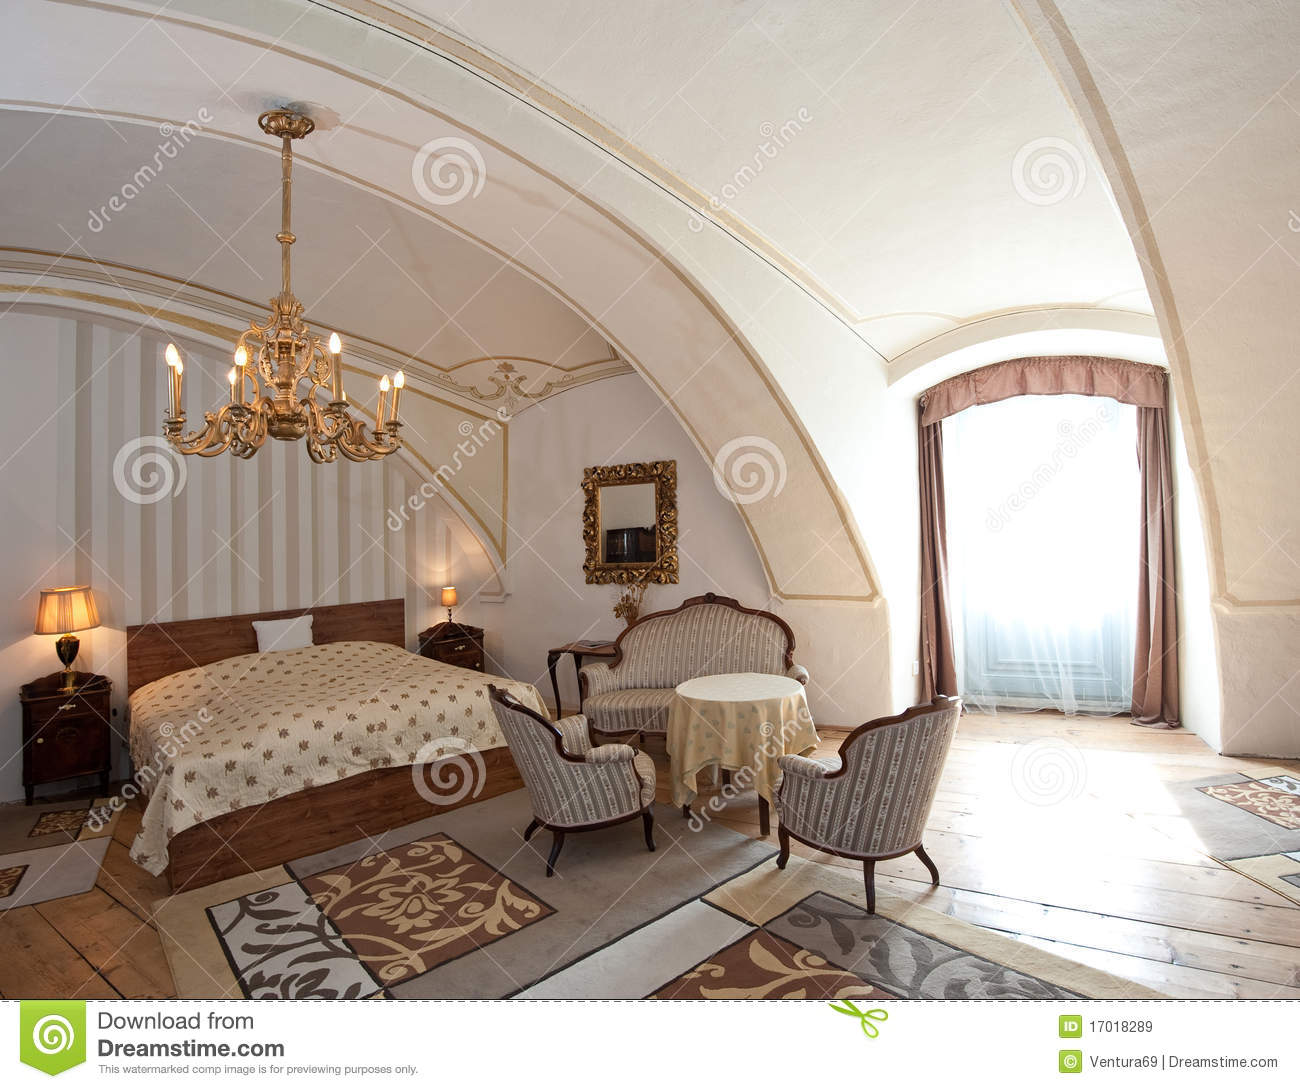 Fashion Inspired Guest Room: Hotel Room In Vintage Style Royalty Free Stock Images